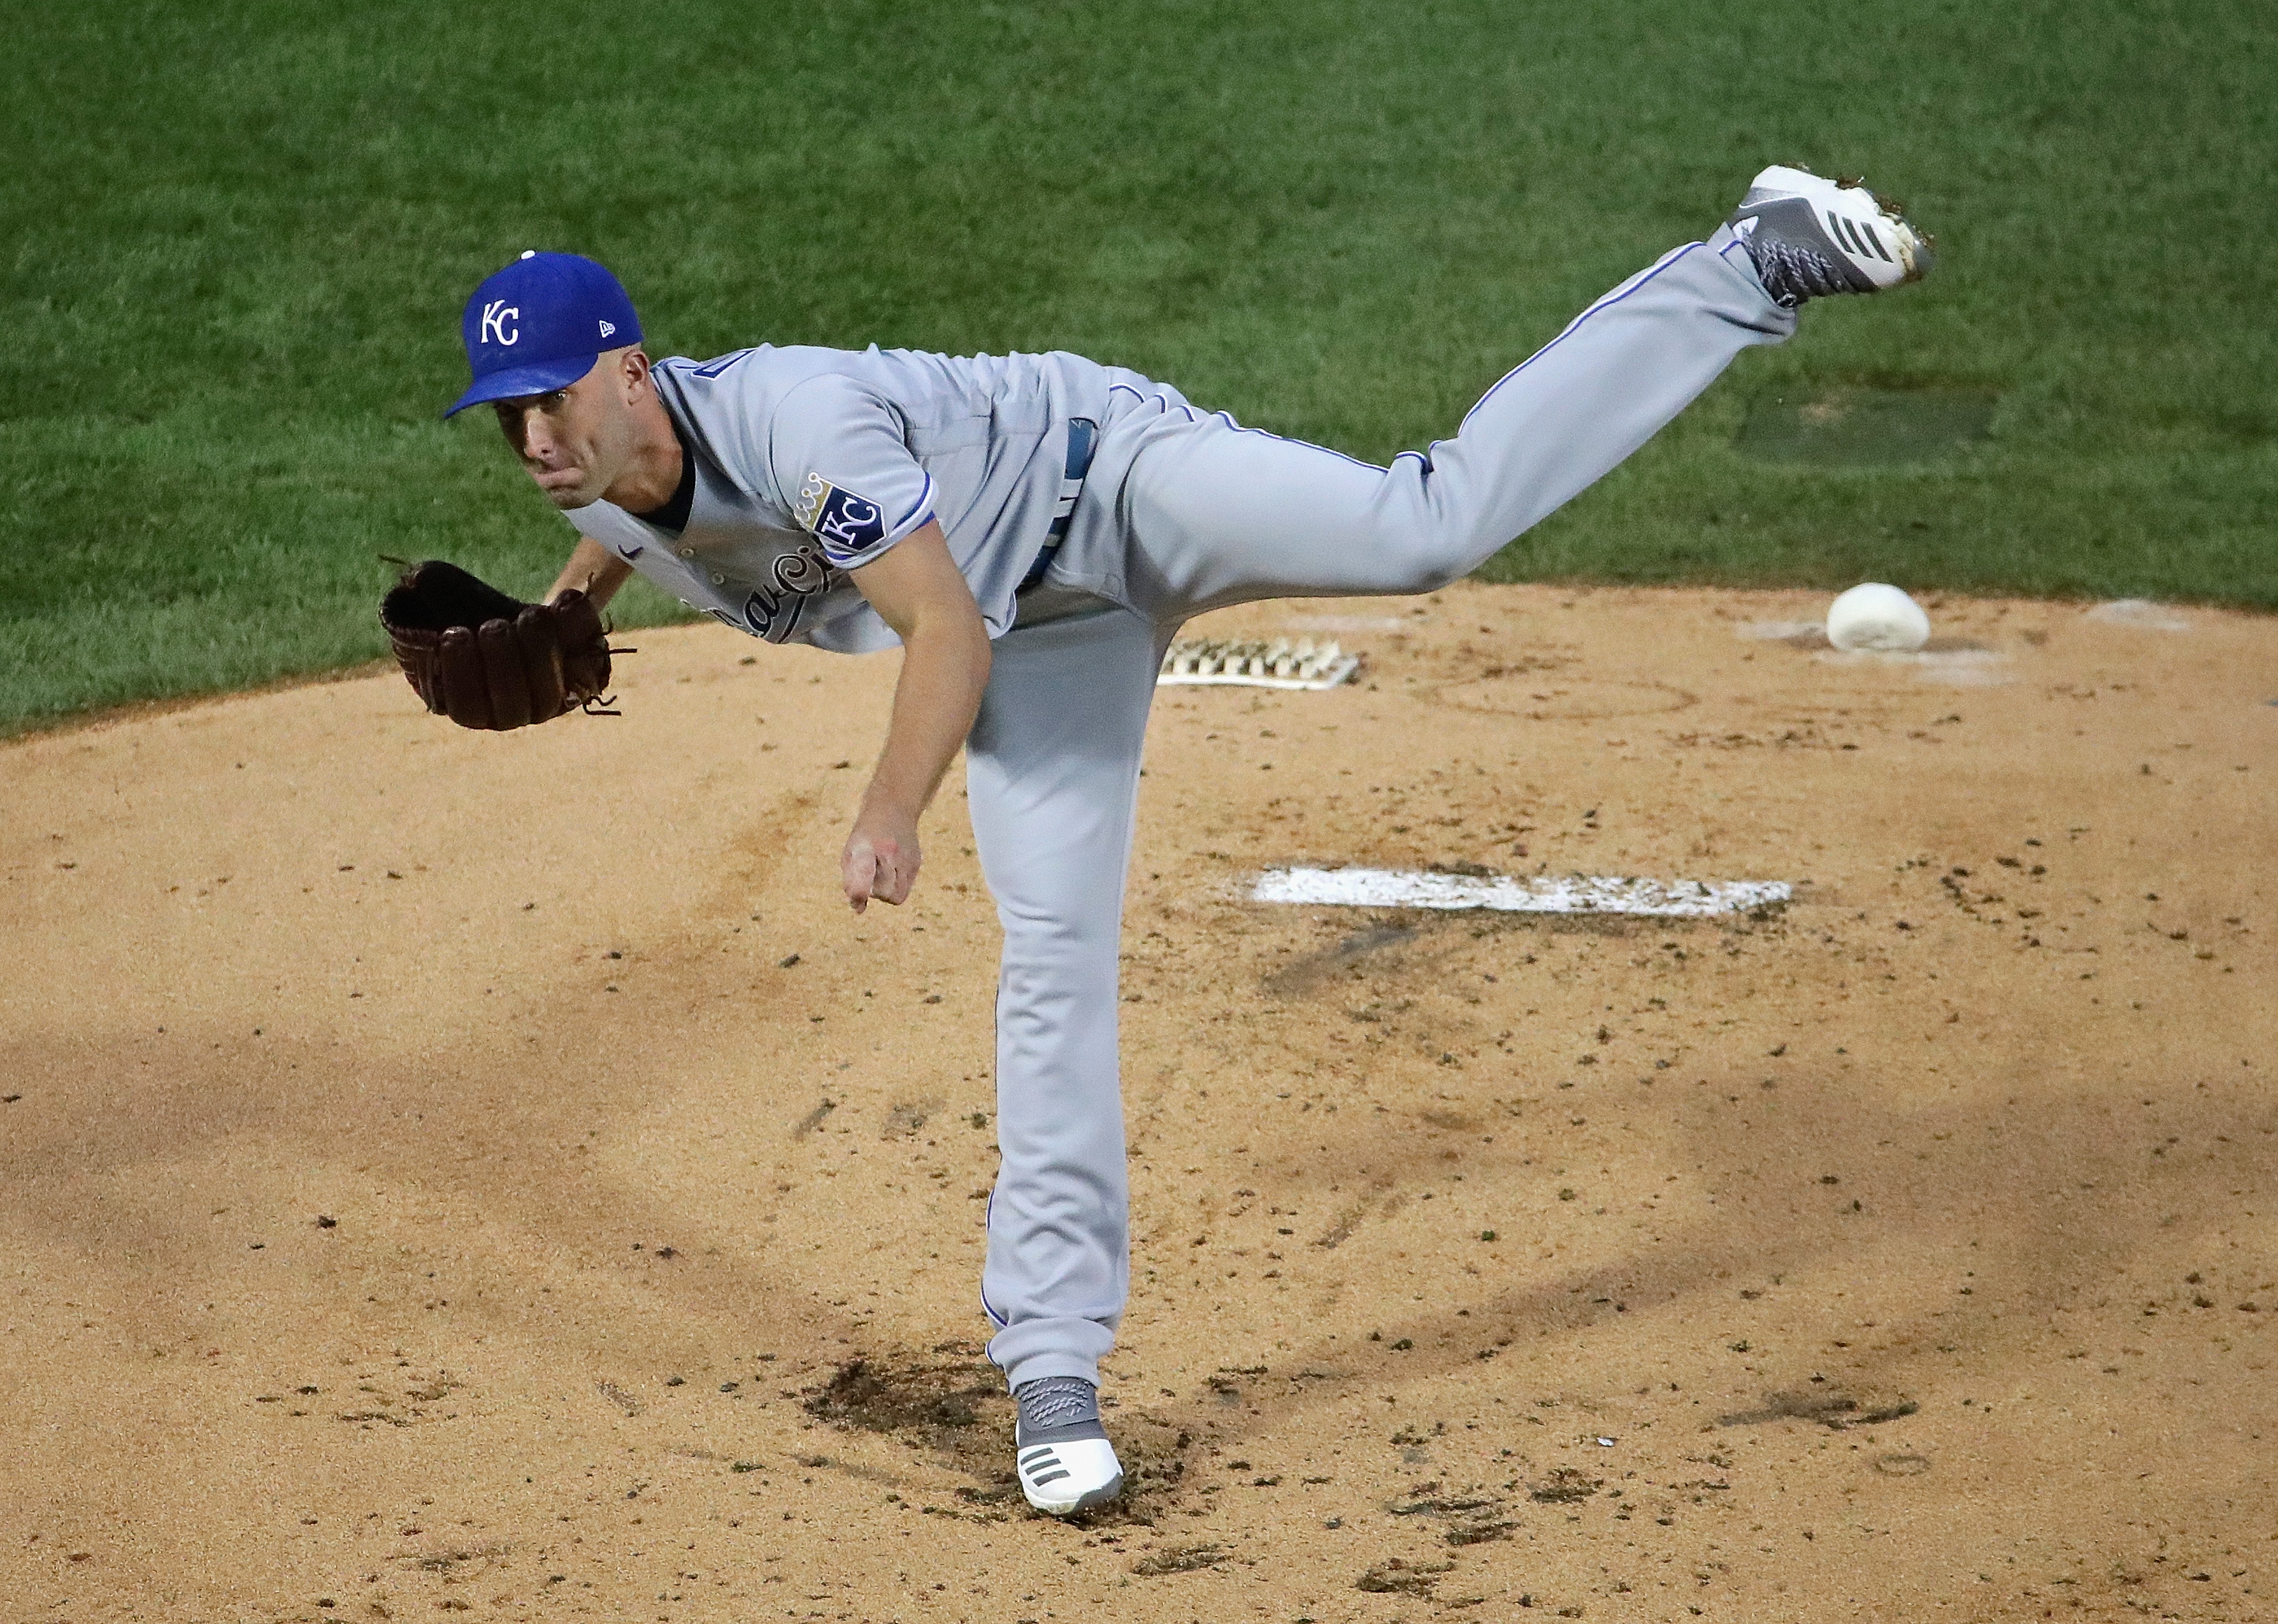 Starting pitcher Danny Duffy #41 of the Kansas City Royals delivers the ball against the Chicago Cubs at Wrigley Field on August 03, 2020 in Chicago, Illinois.